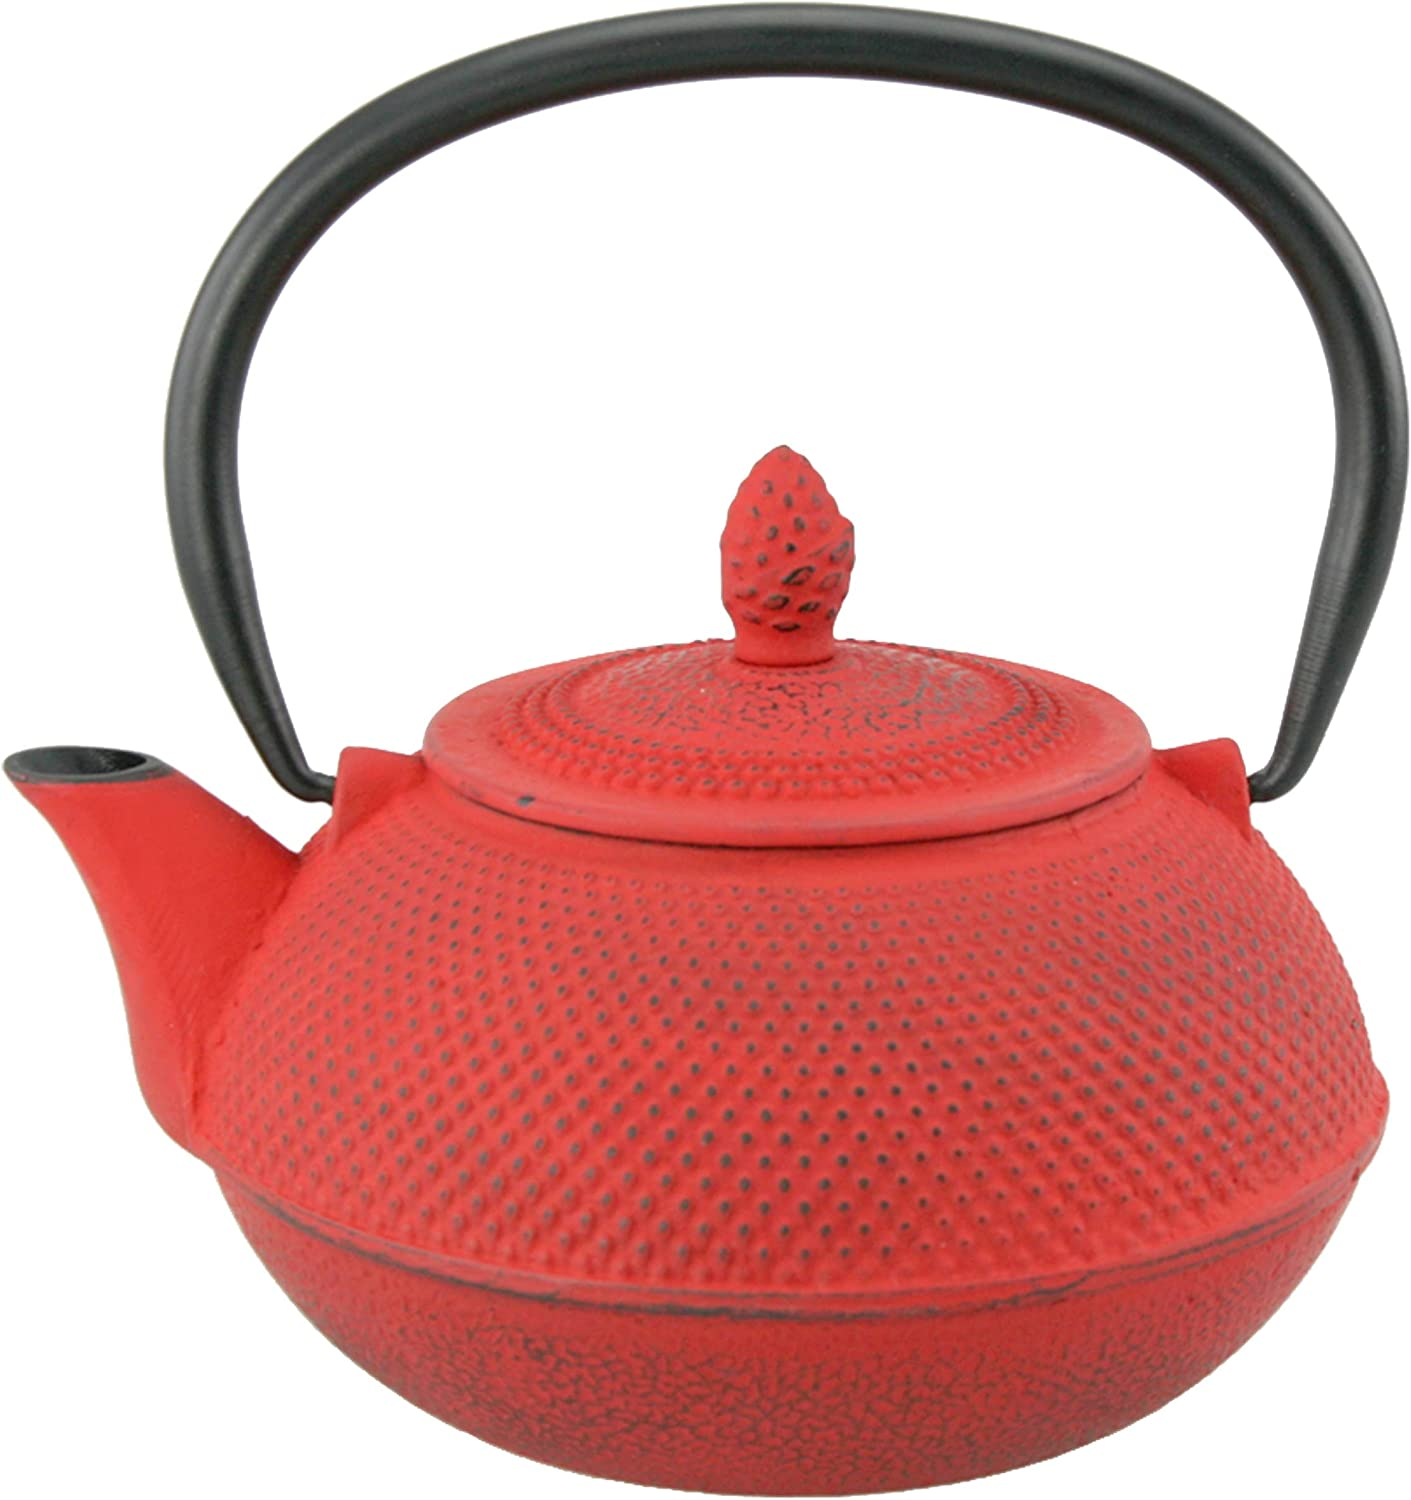 Creative Home Kyusu 30 oz. Cast Iron Tea Pot with Removable Stainless Steel Infuser Basket, Red